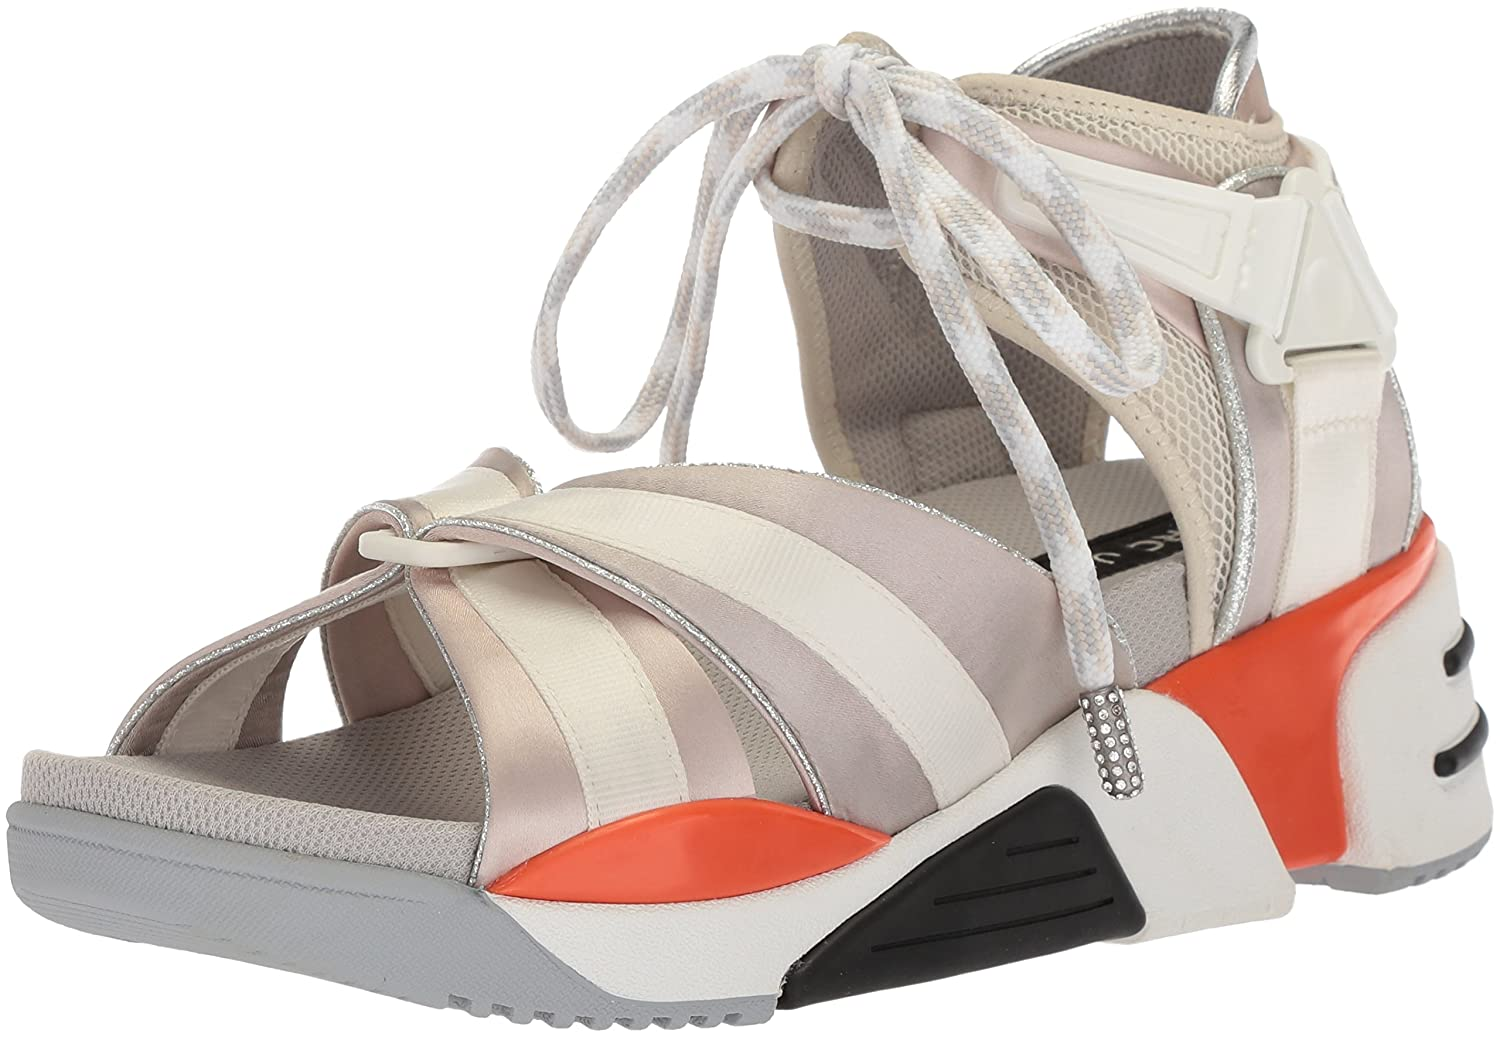 Marc Jacobs Women's Somewhere Sport Sandal B075Y6394G 37 M EU (7 US)|Off White/Multi